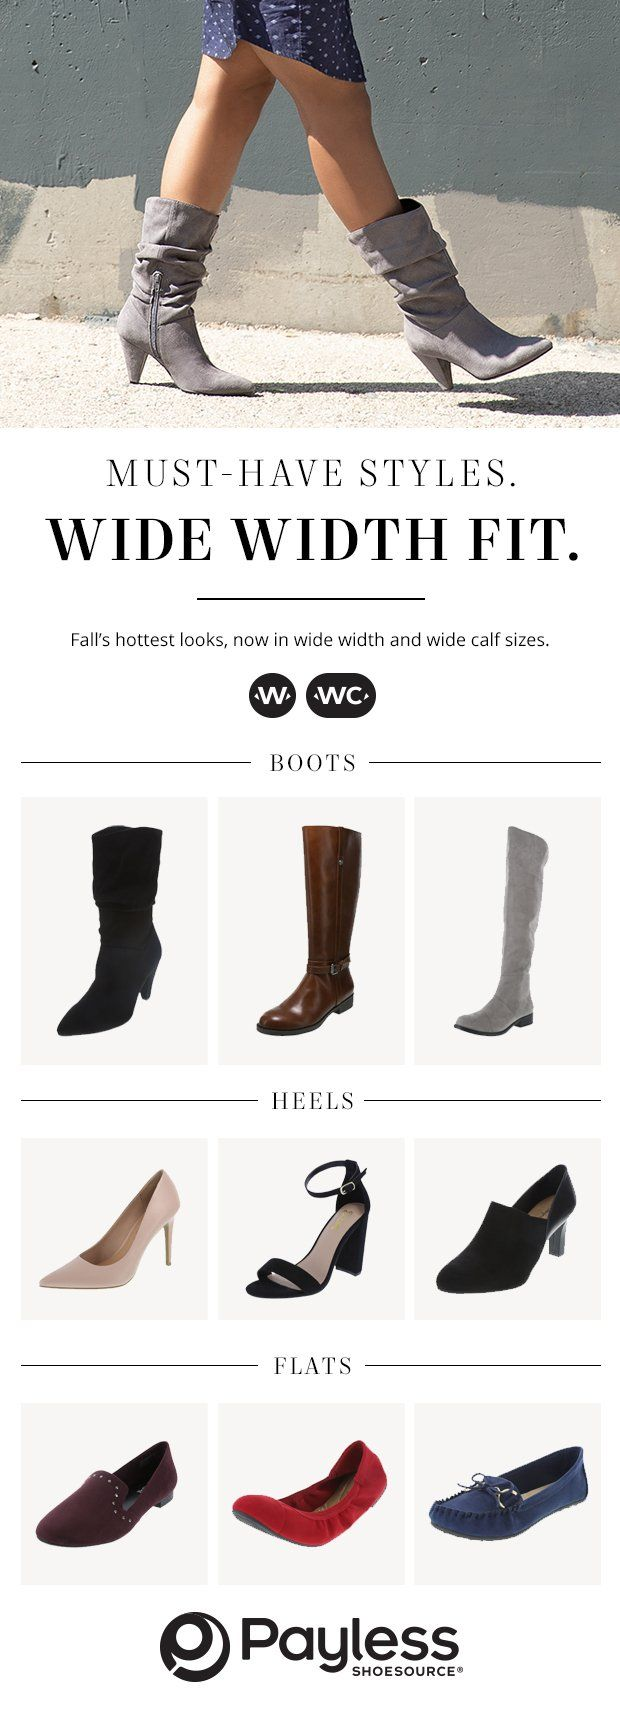 9df15c6fa98 Find wide width shoes for women at payless we always have a variety jpg  620x1709 Payless